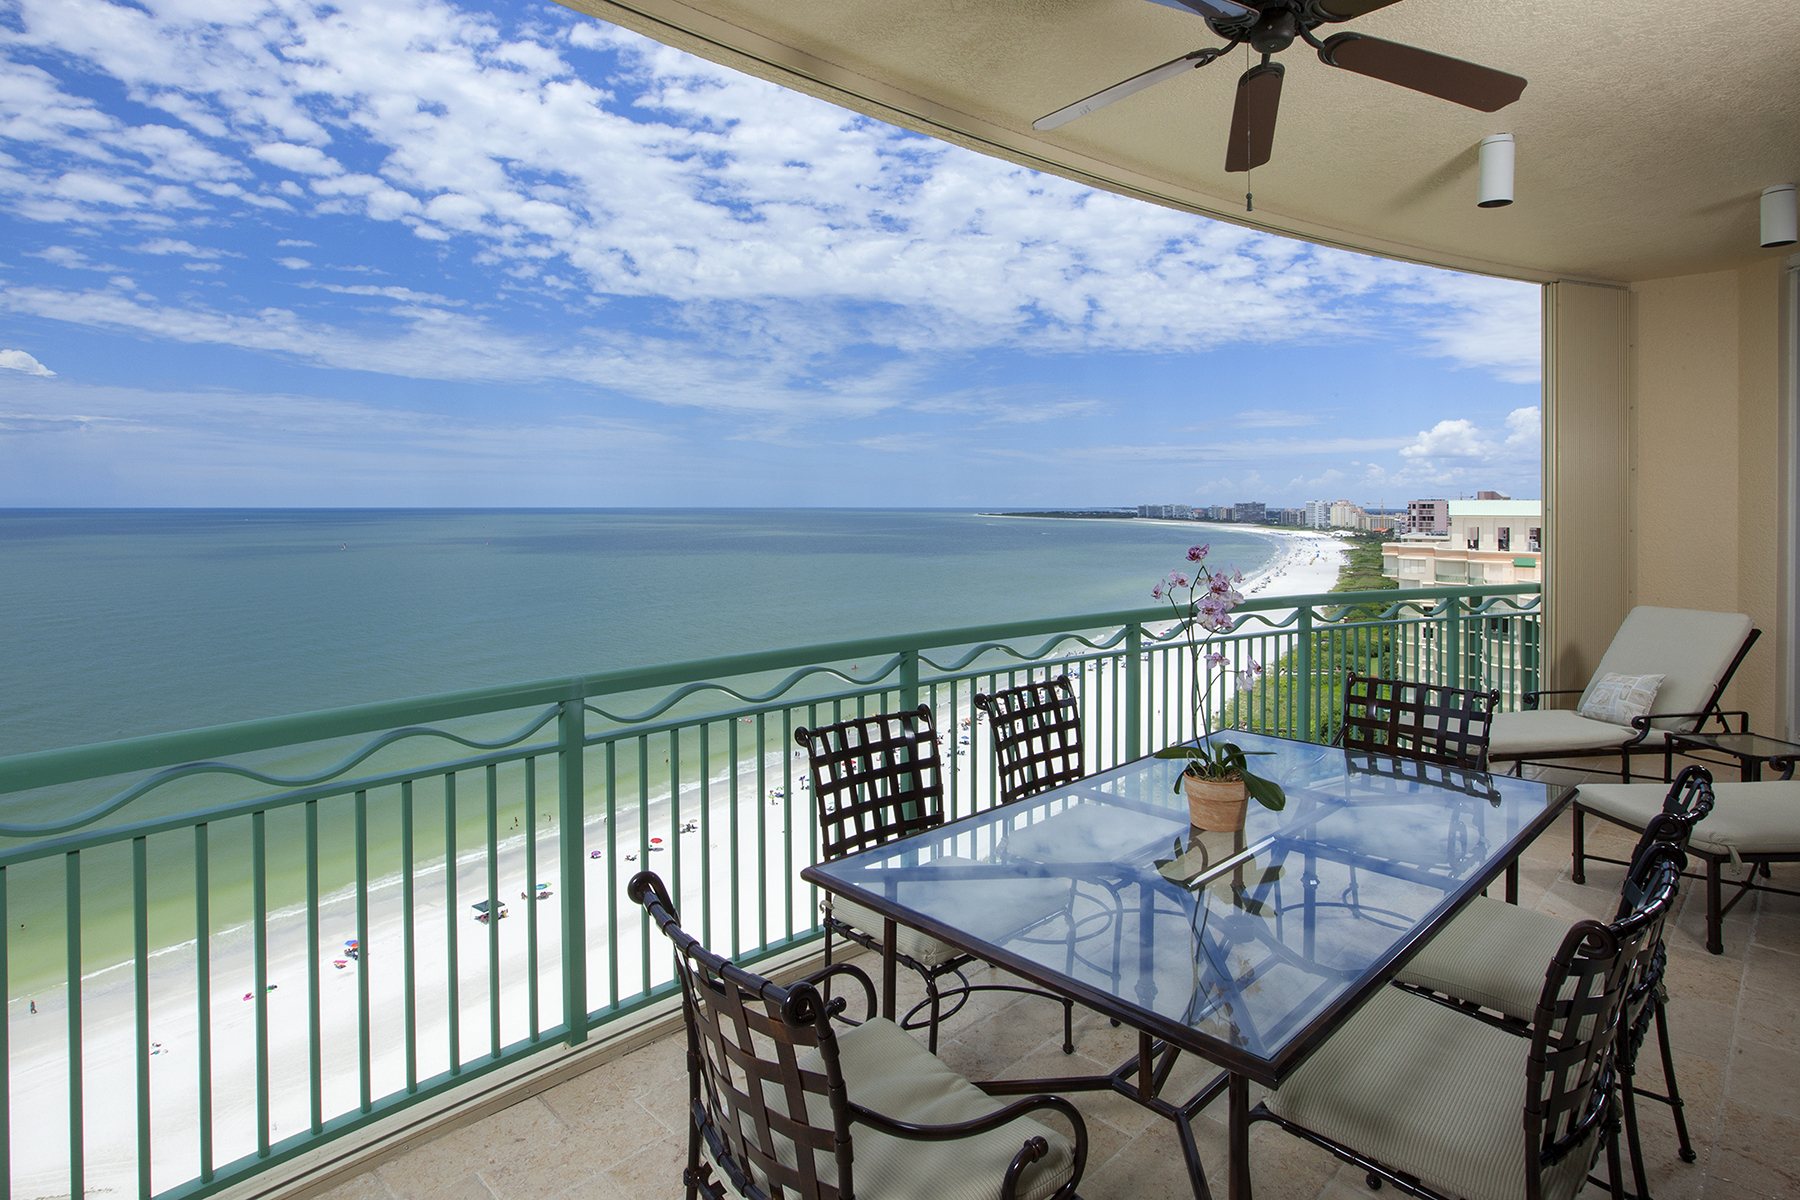 Condominium for Sale at CAPE MARCO - VERACRUZ 940 Cape Marco Dr 1802 Marco Island, Florida, 34145 United States